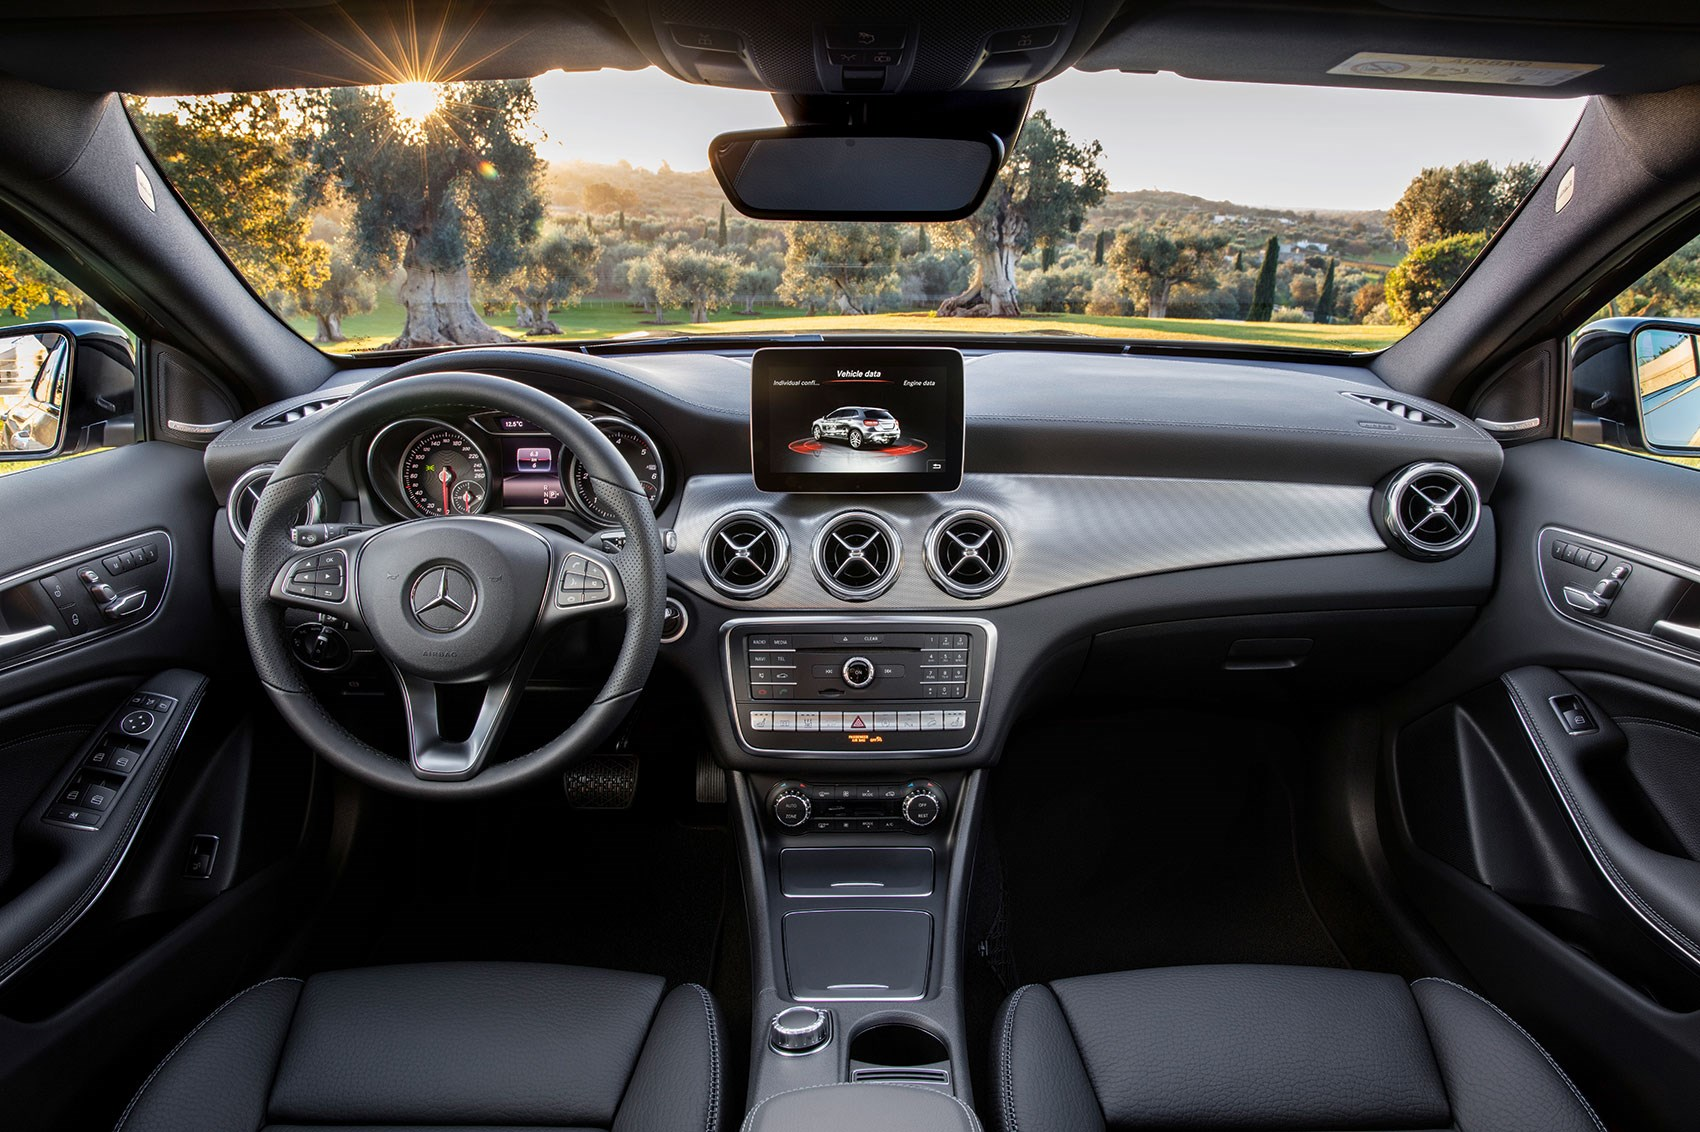 Shinier Interior Trim For 2017 Inside The Gla